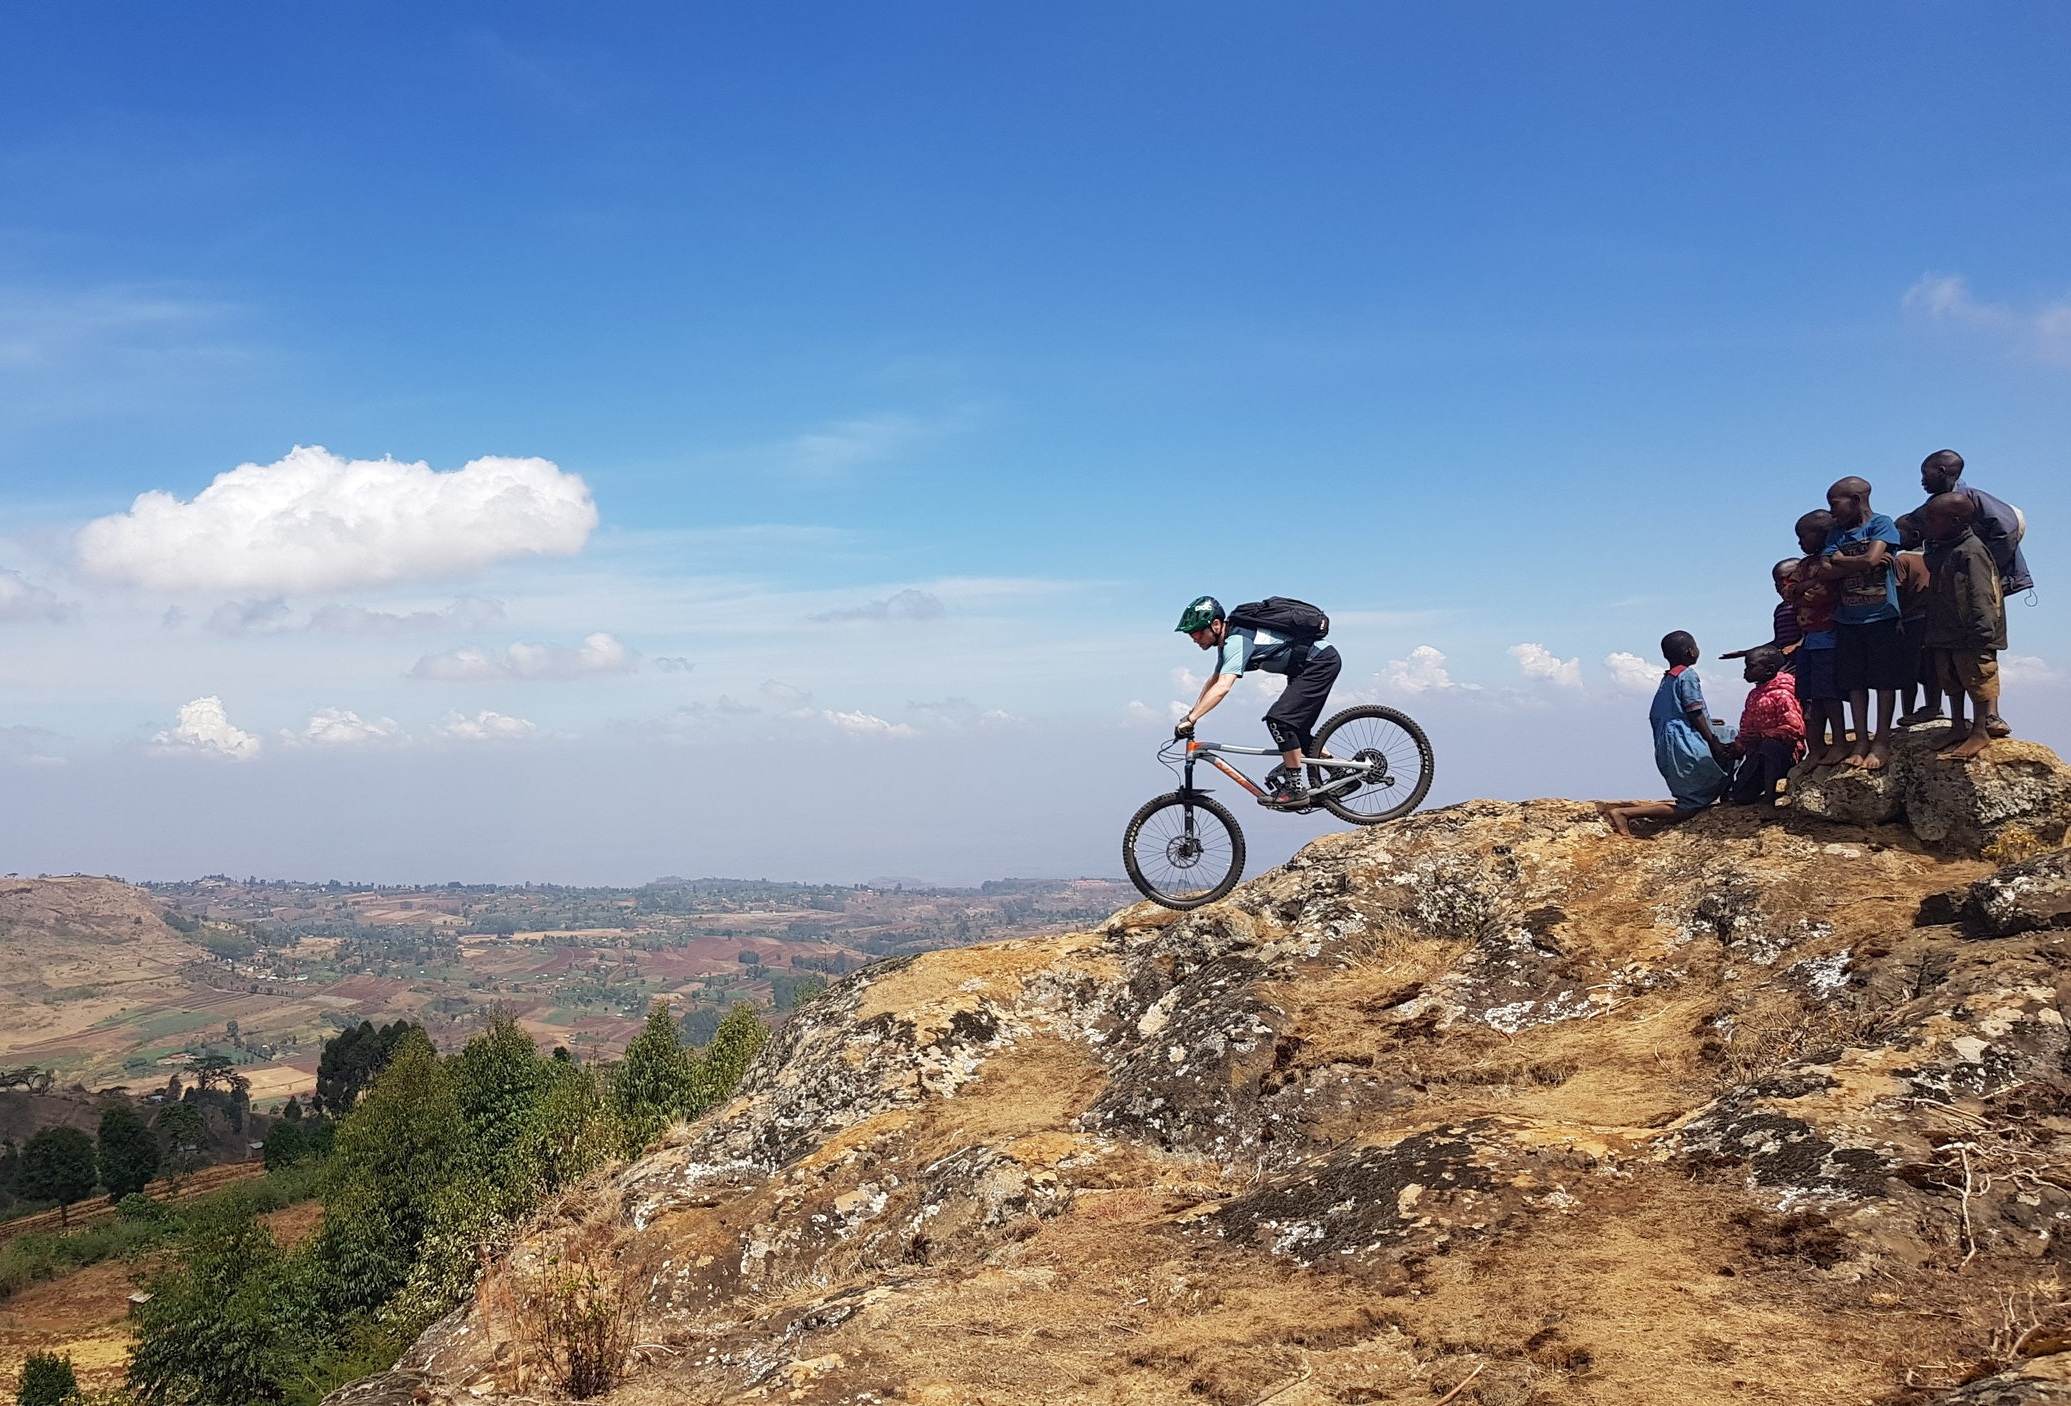 Ultimate Uganda Enduro. - Experience the very best of Uganda with this 12 day Enduro itinerary. We'll do more than just ride our bikes though, we're climbing volcanos, rafting the mighty waters of the White Nile and getting off the beaten track on Safari.